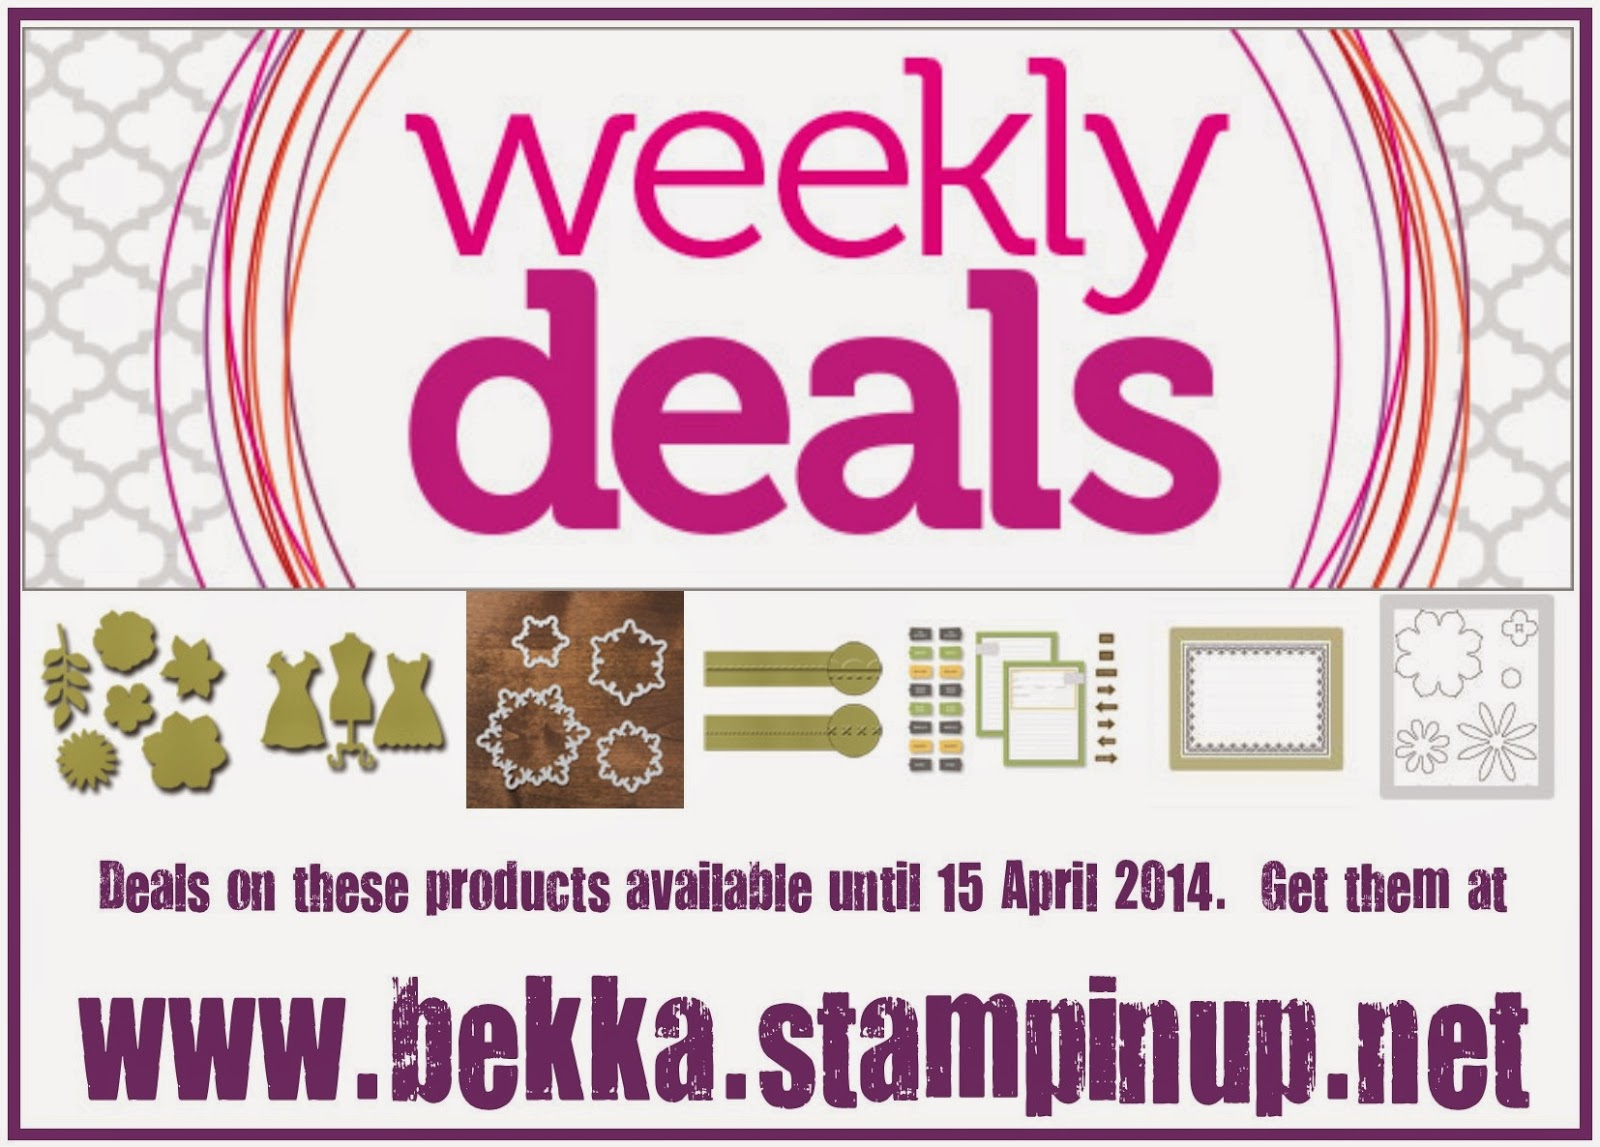 Stampin' Up! UK Weekly Deals 9-15 April 2014 - grab them at www.bekka.stampinup.net